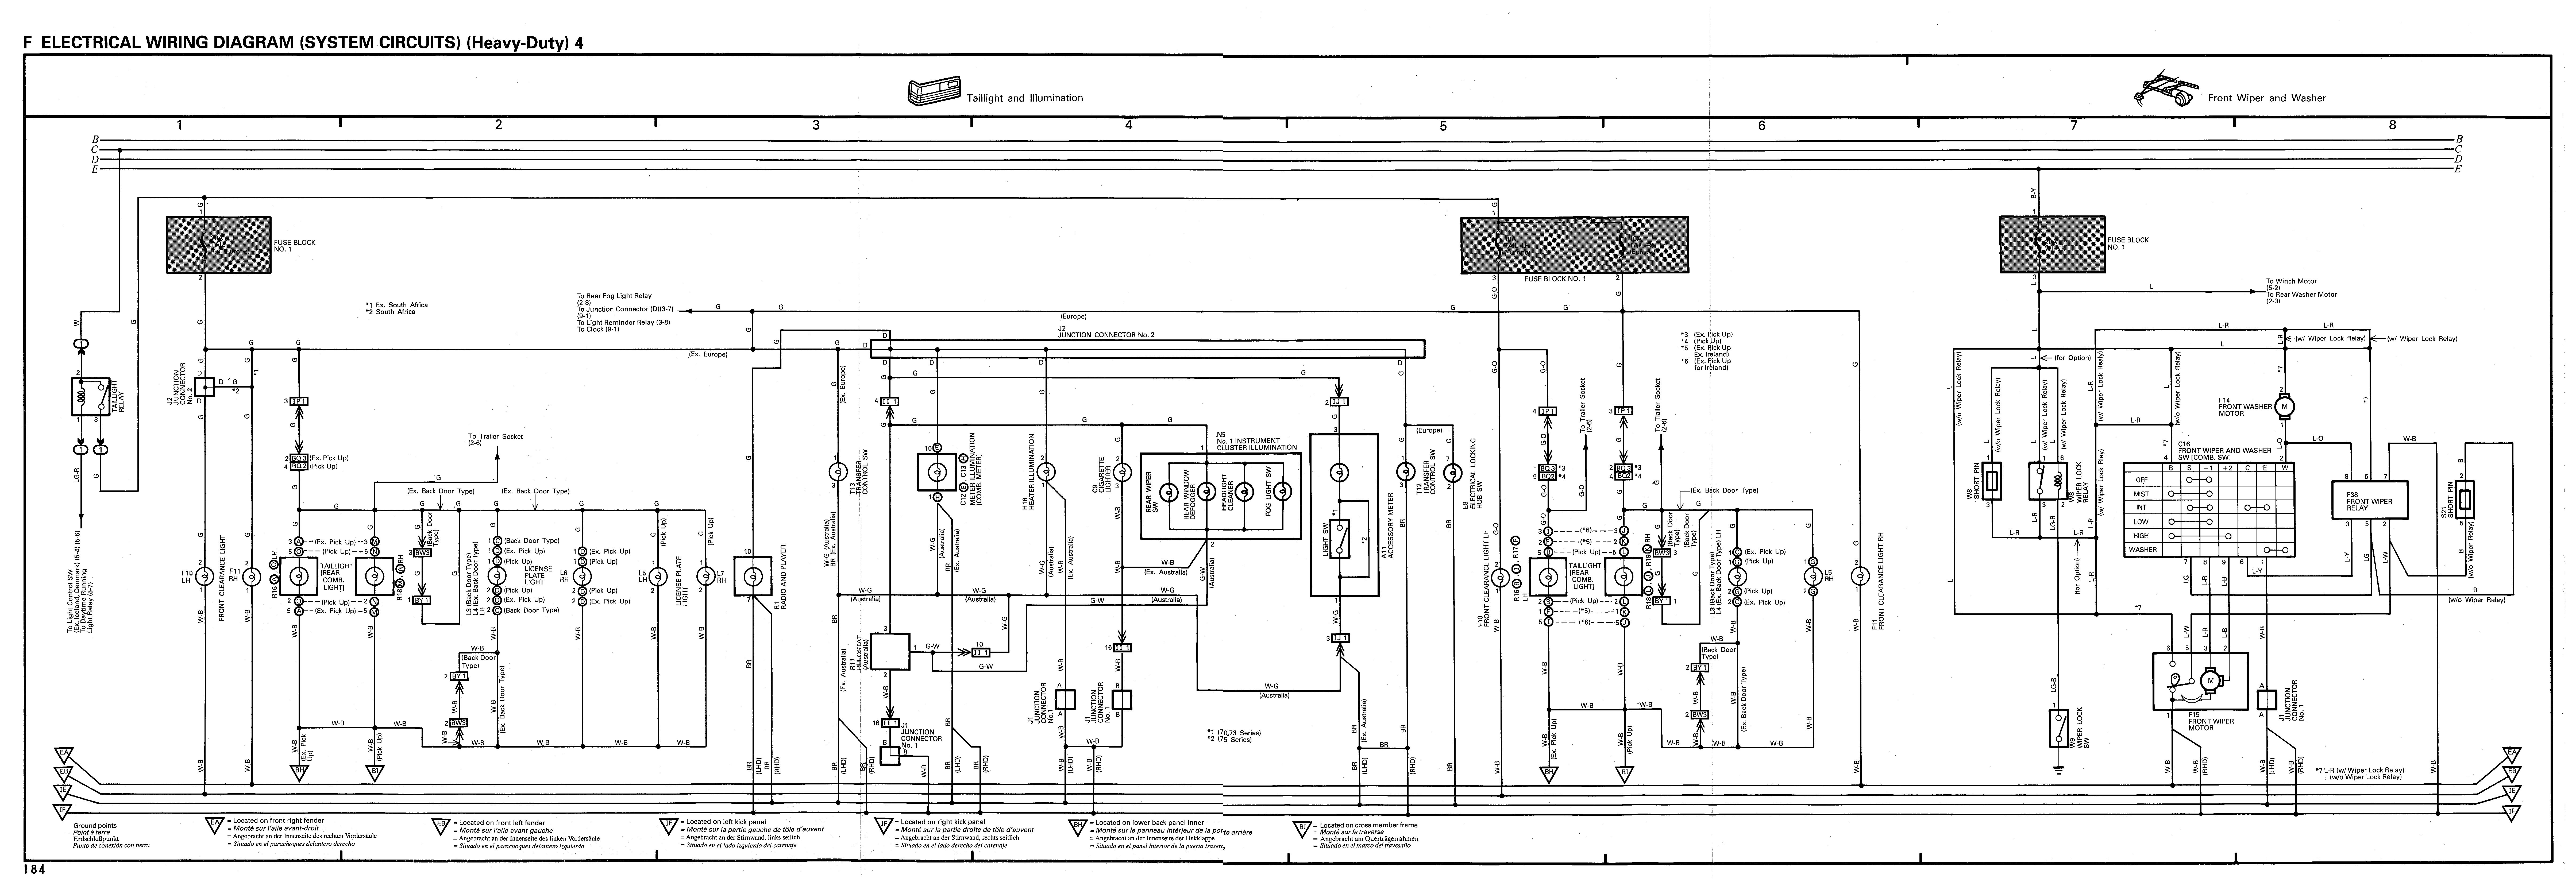 Toyota Land Cruiser 1990 1998 Electrical Wiring Diagram Rheostat Heavy Duty 4